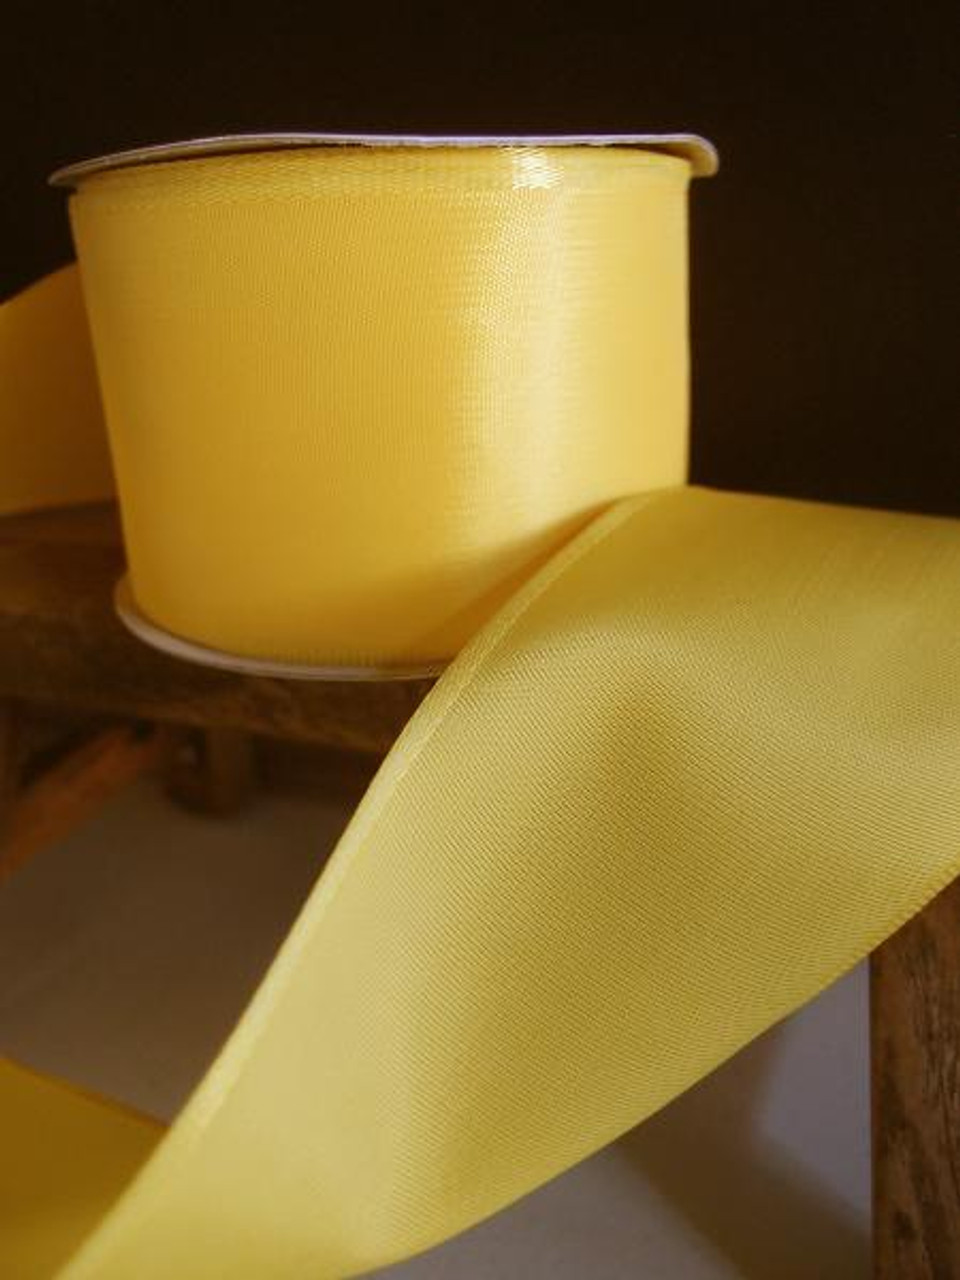 Yellow Florist's Choice Ribbon with Wire Edge (2 sizes)